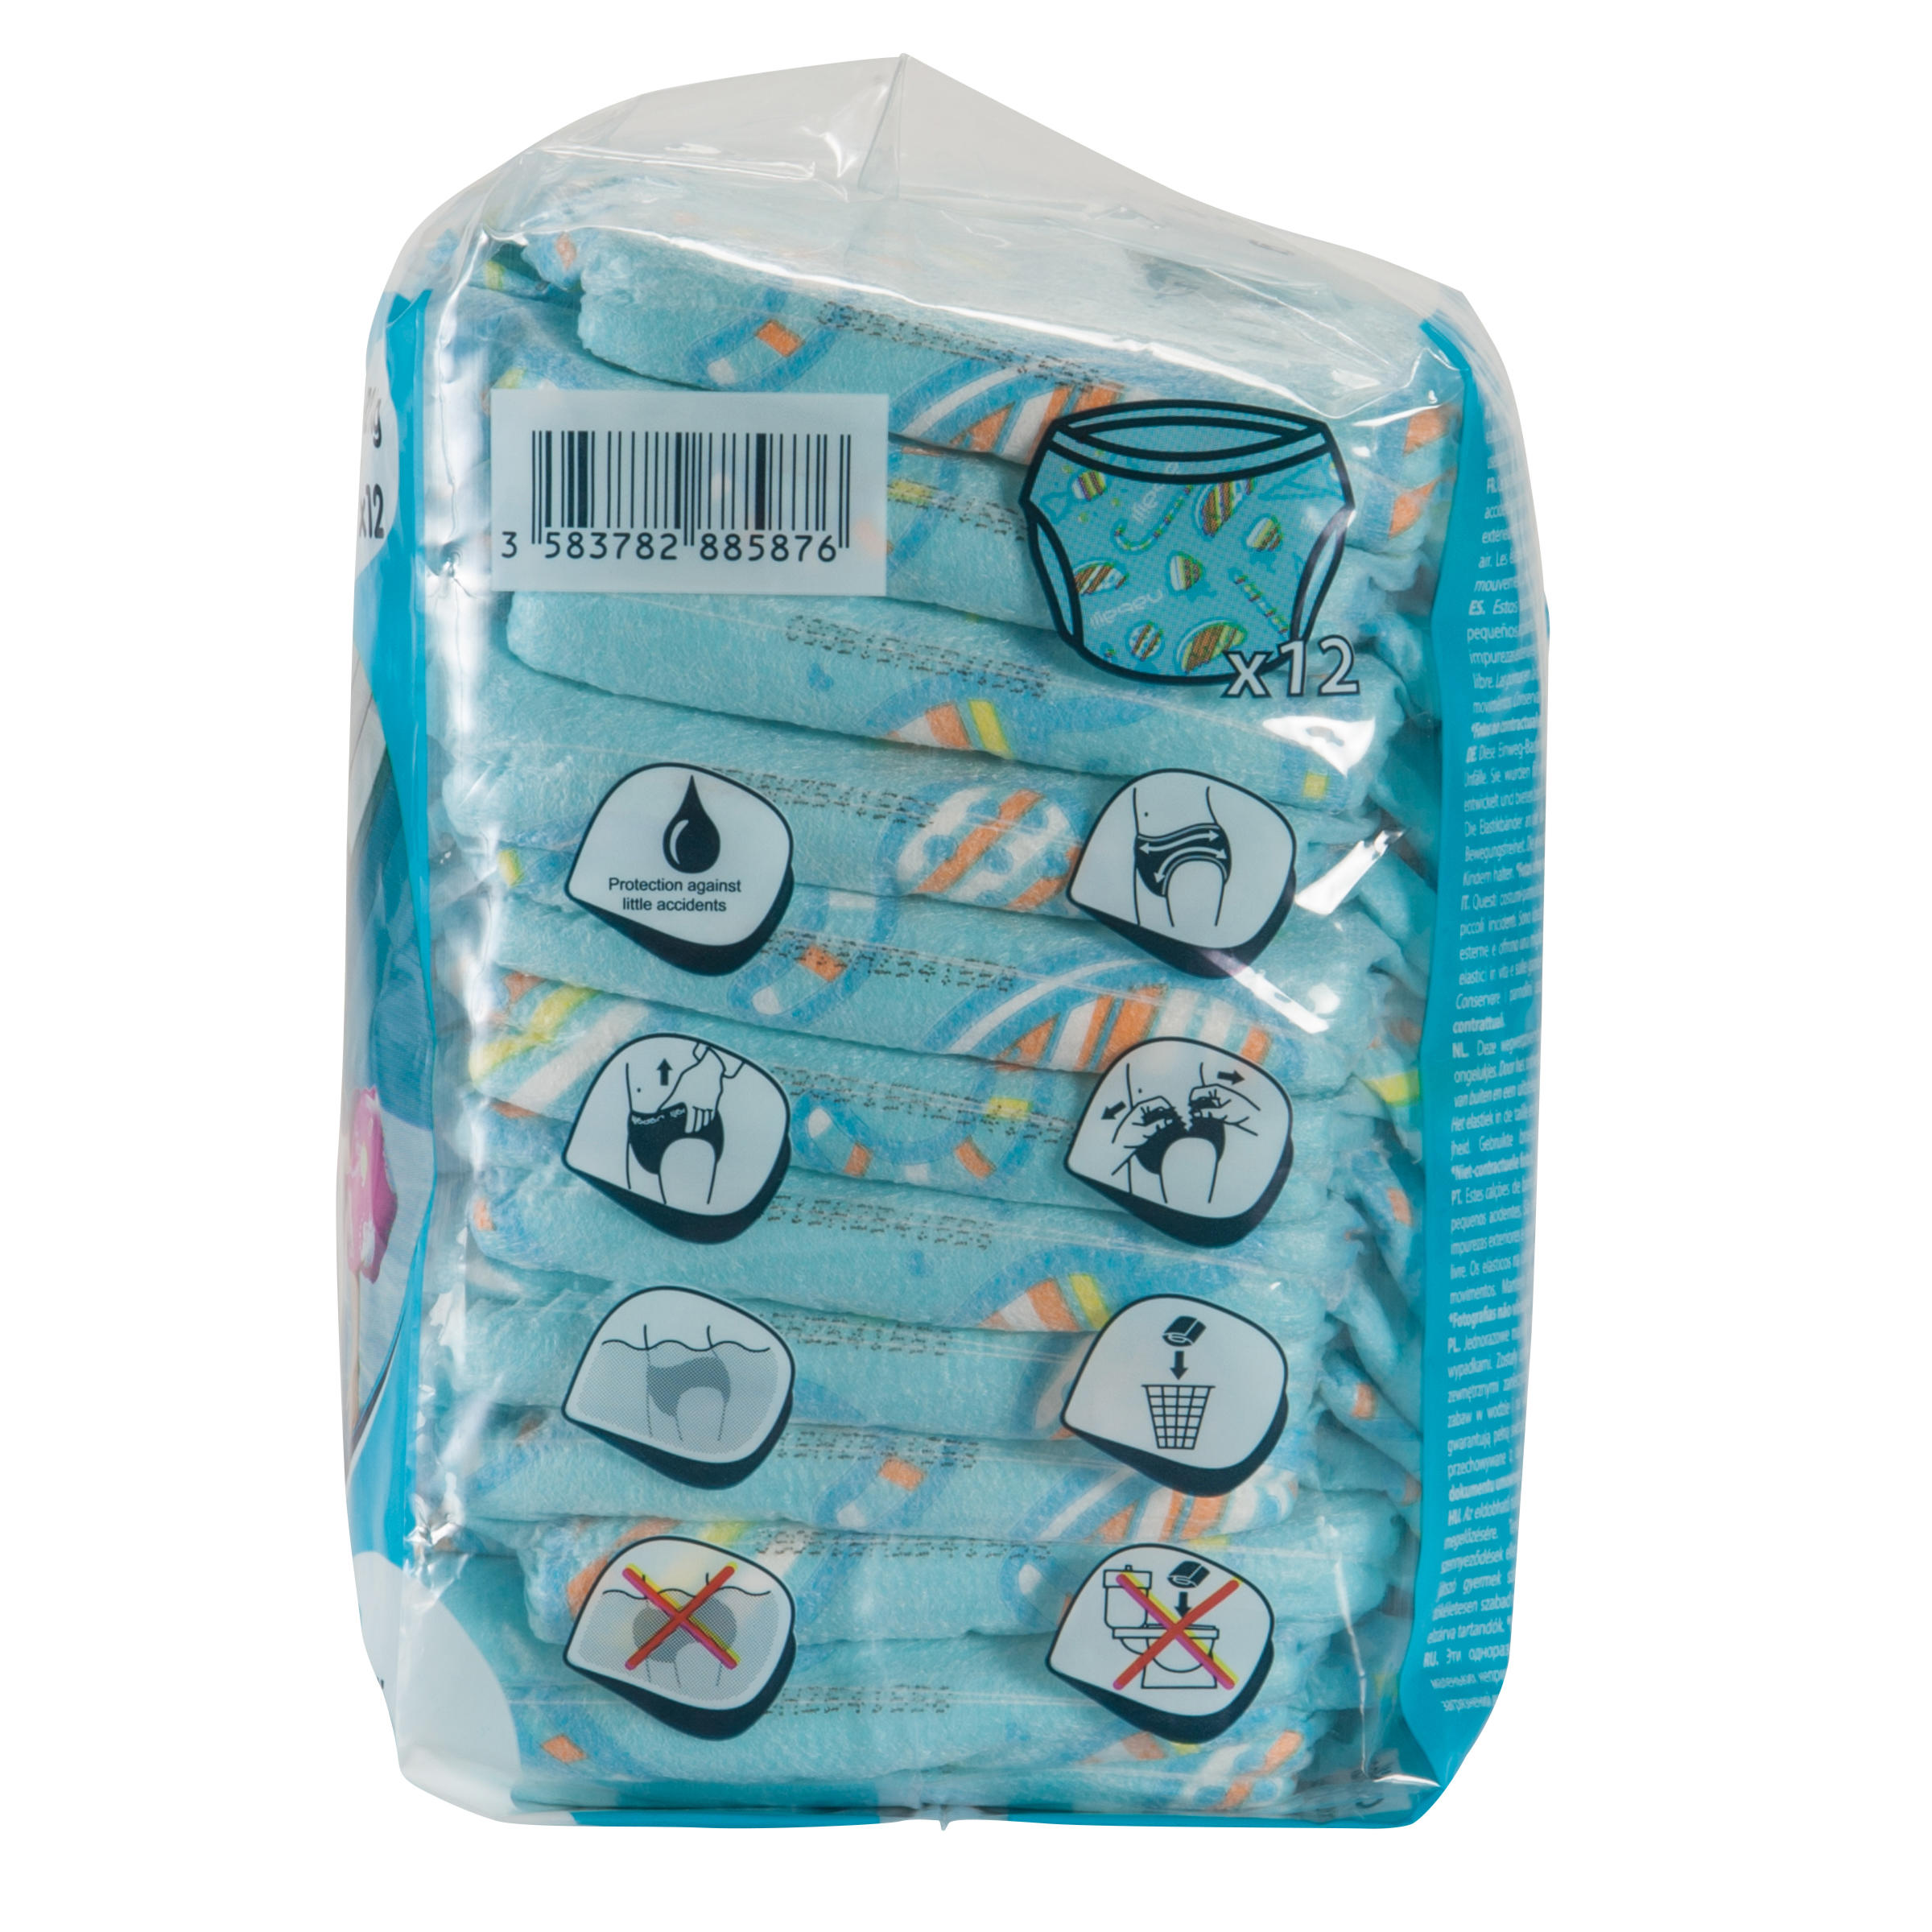 Disposable Swim Diaper for Water Activities for Babies 6-12 kg